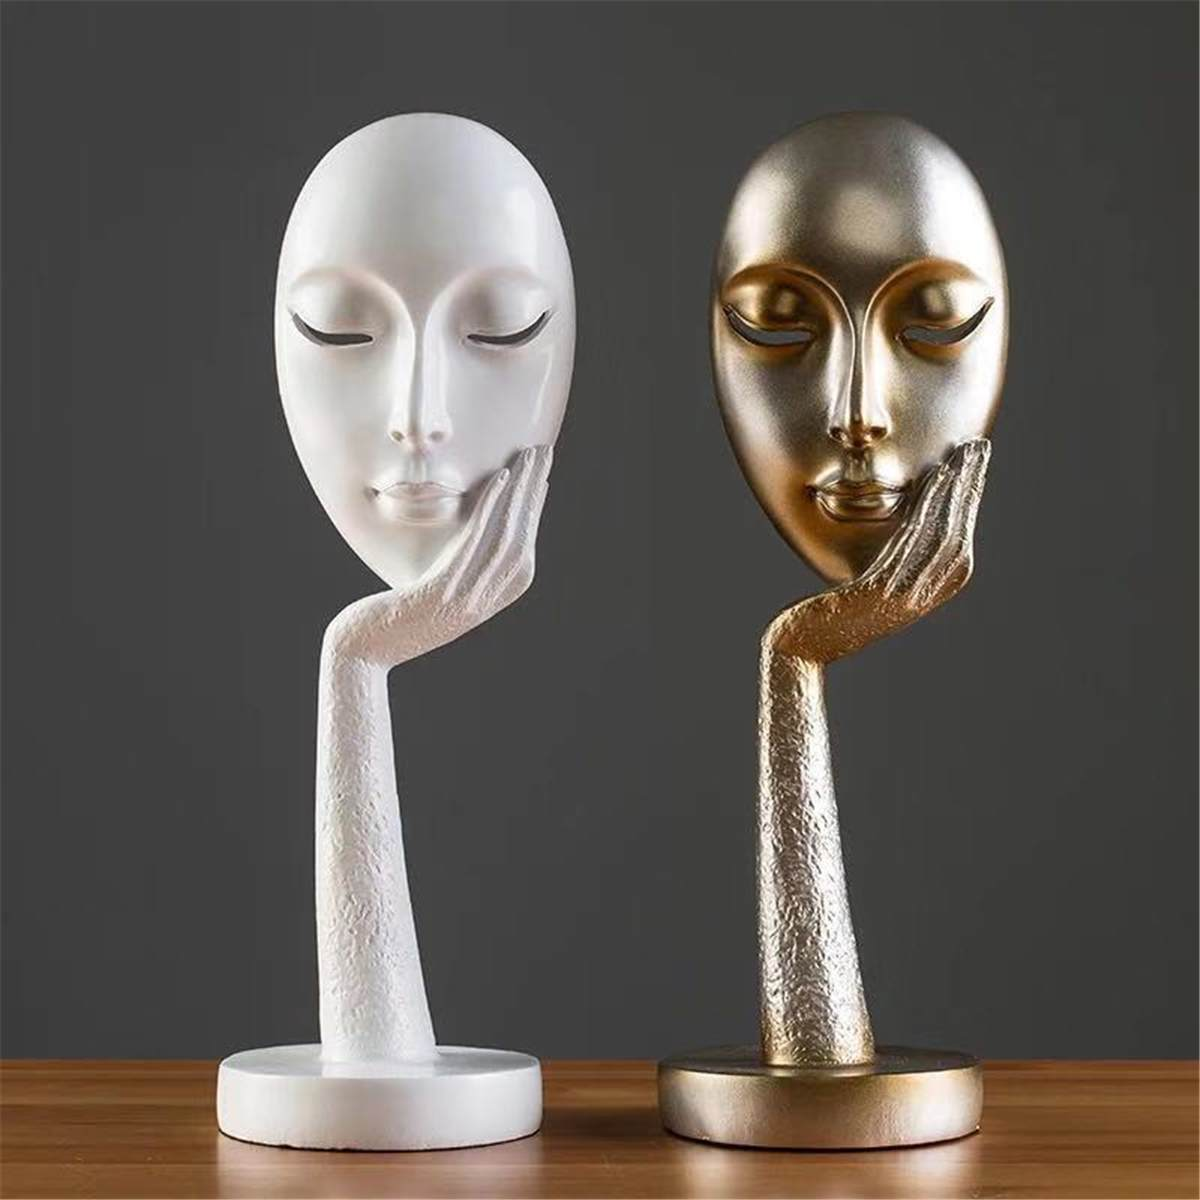 Modern Human Meditators Abstract Lady Face Character Resin Statues Sculpture Art Crafts Figurine Home Decorative Display